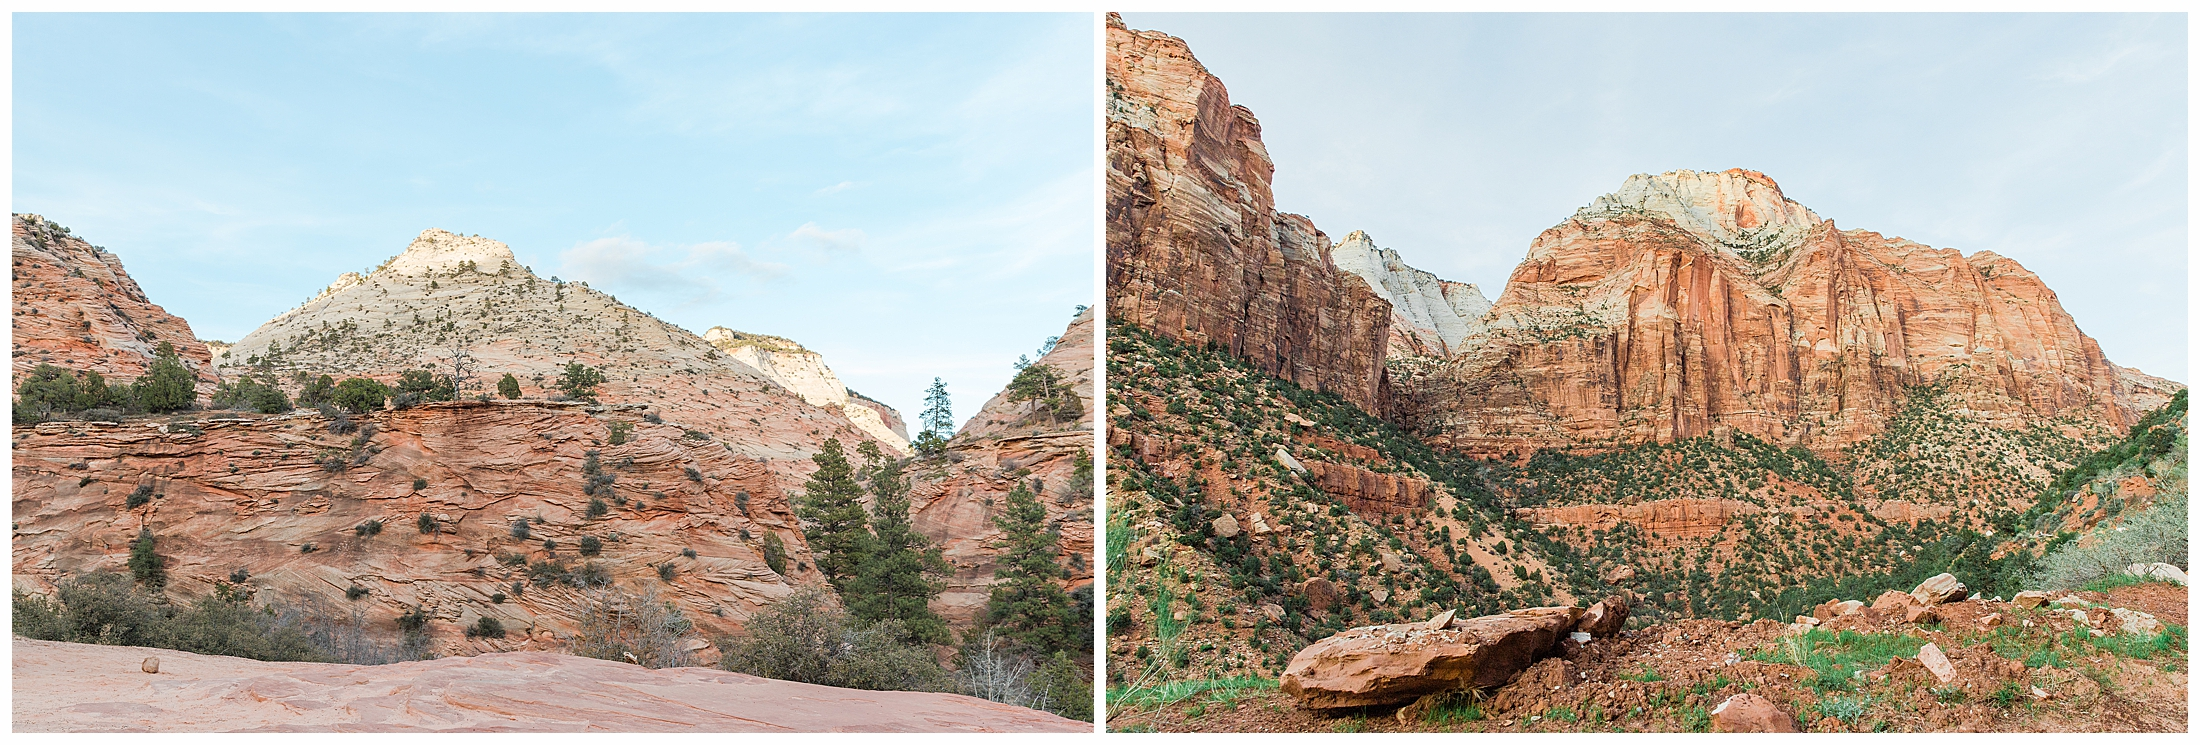 zion-national-park-itinerary_0031.jpg